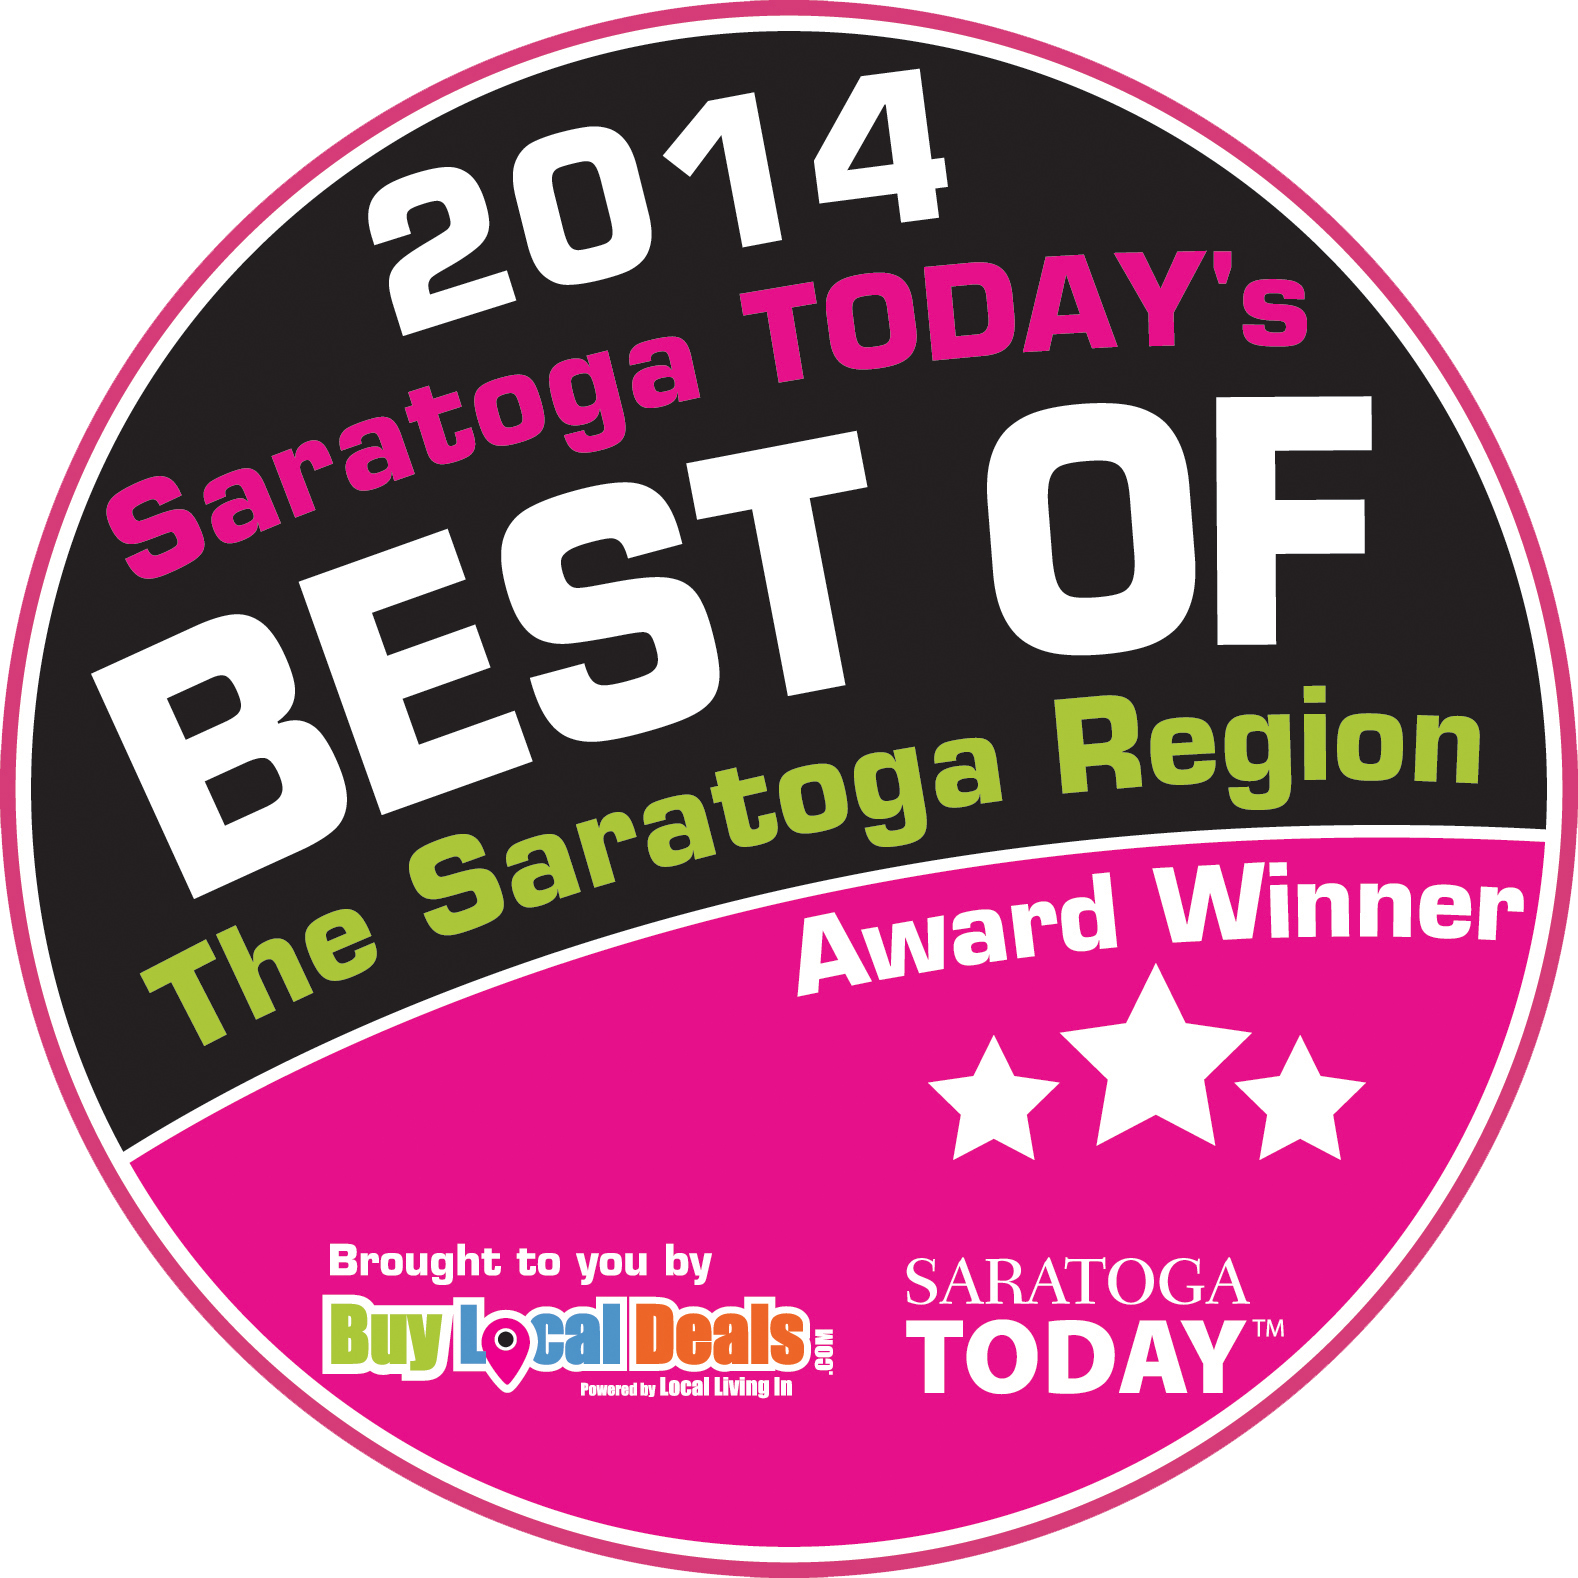 saratoga today best of 2014